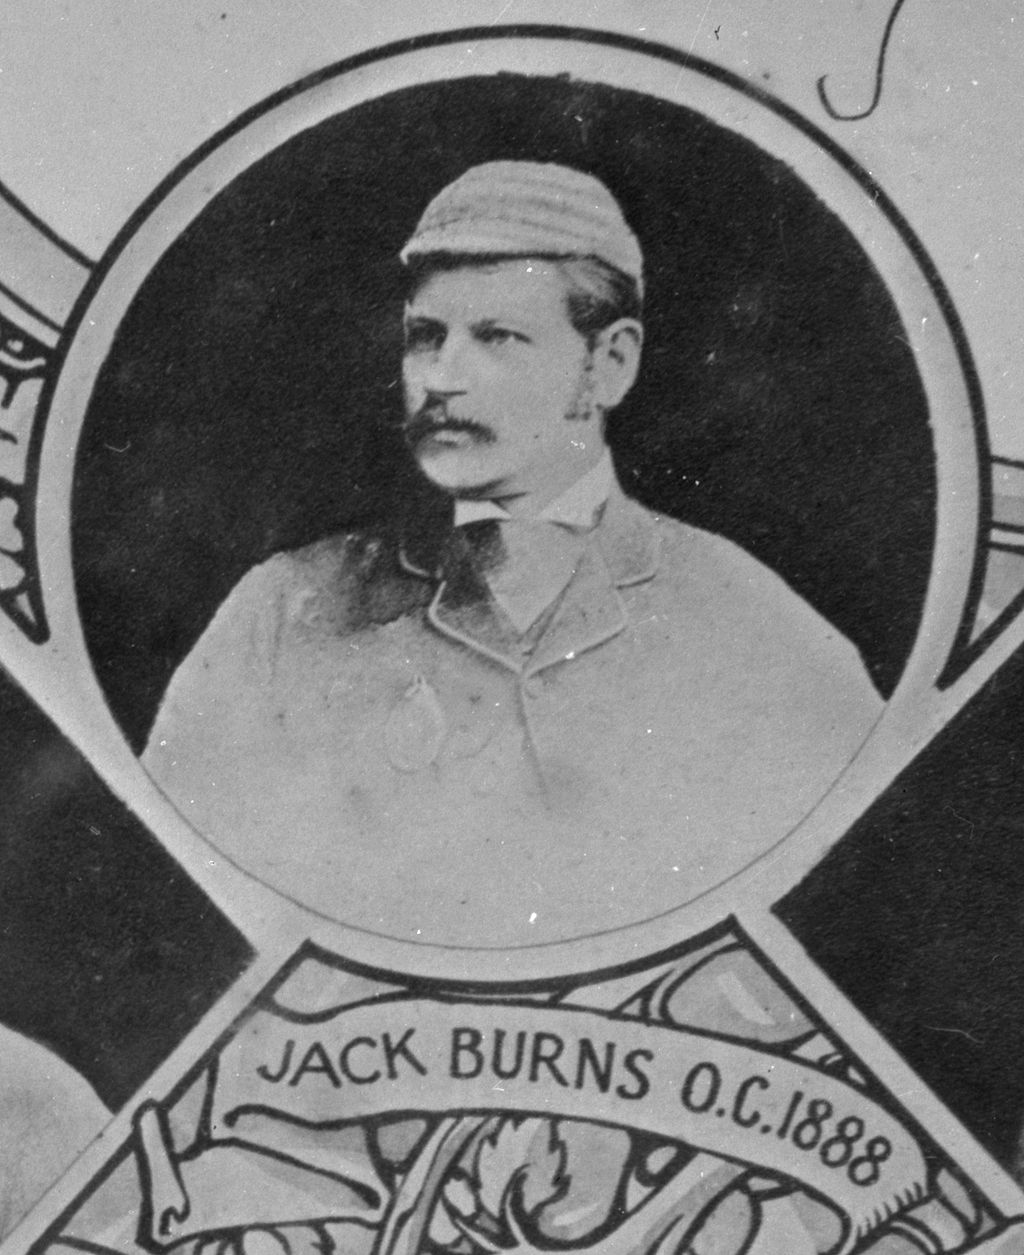 Jack Burns, Open Champion.